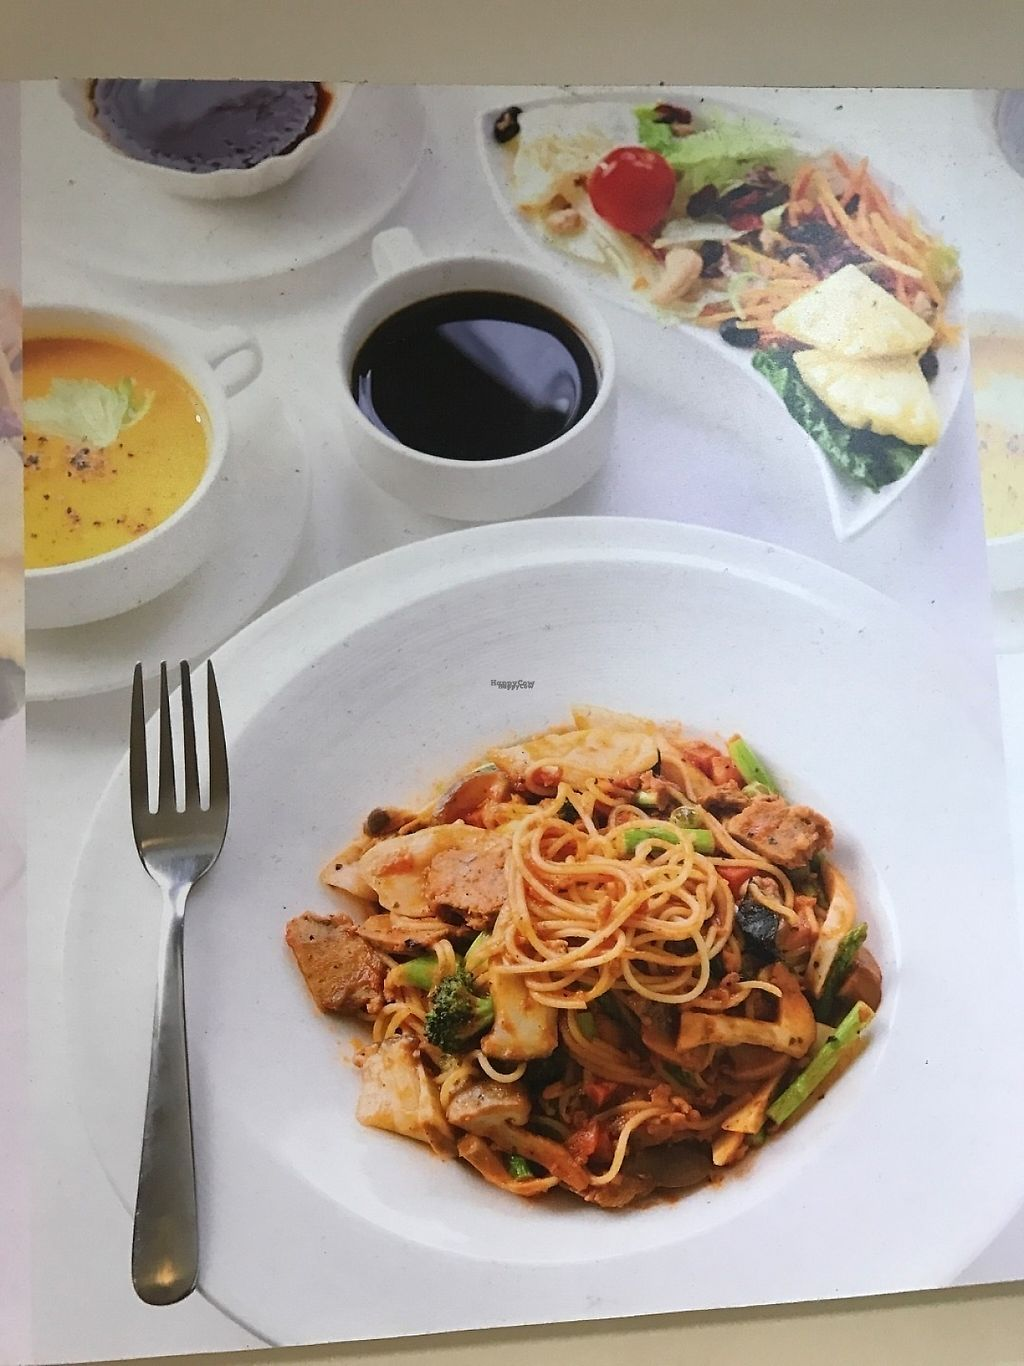 """Photo of Sunshinetomato  by <a href=""""/members/profile/Integrativelife"""">Integrativelife</a> <br/>Vegan pasta( noodles) with  soup, salad, desert, plum juice, set menu <br/> March 24, 2017  - <a href='/contact/abuse/image/89199/240363'>Report</a>"""